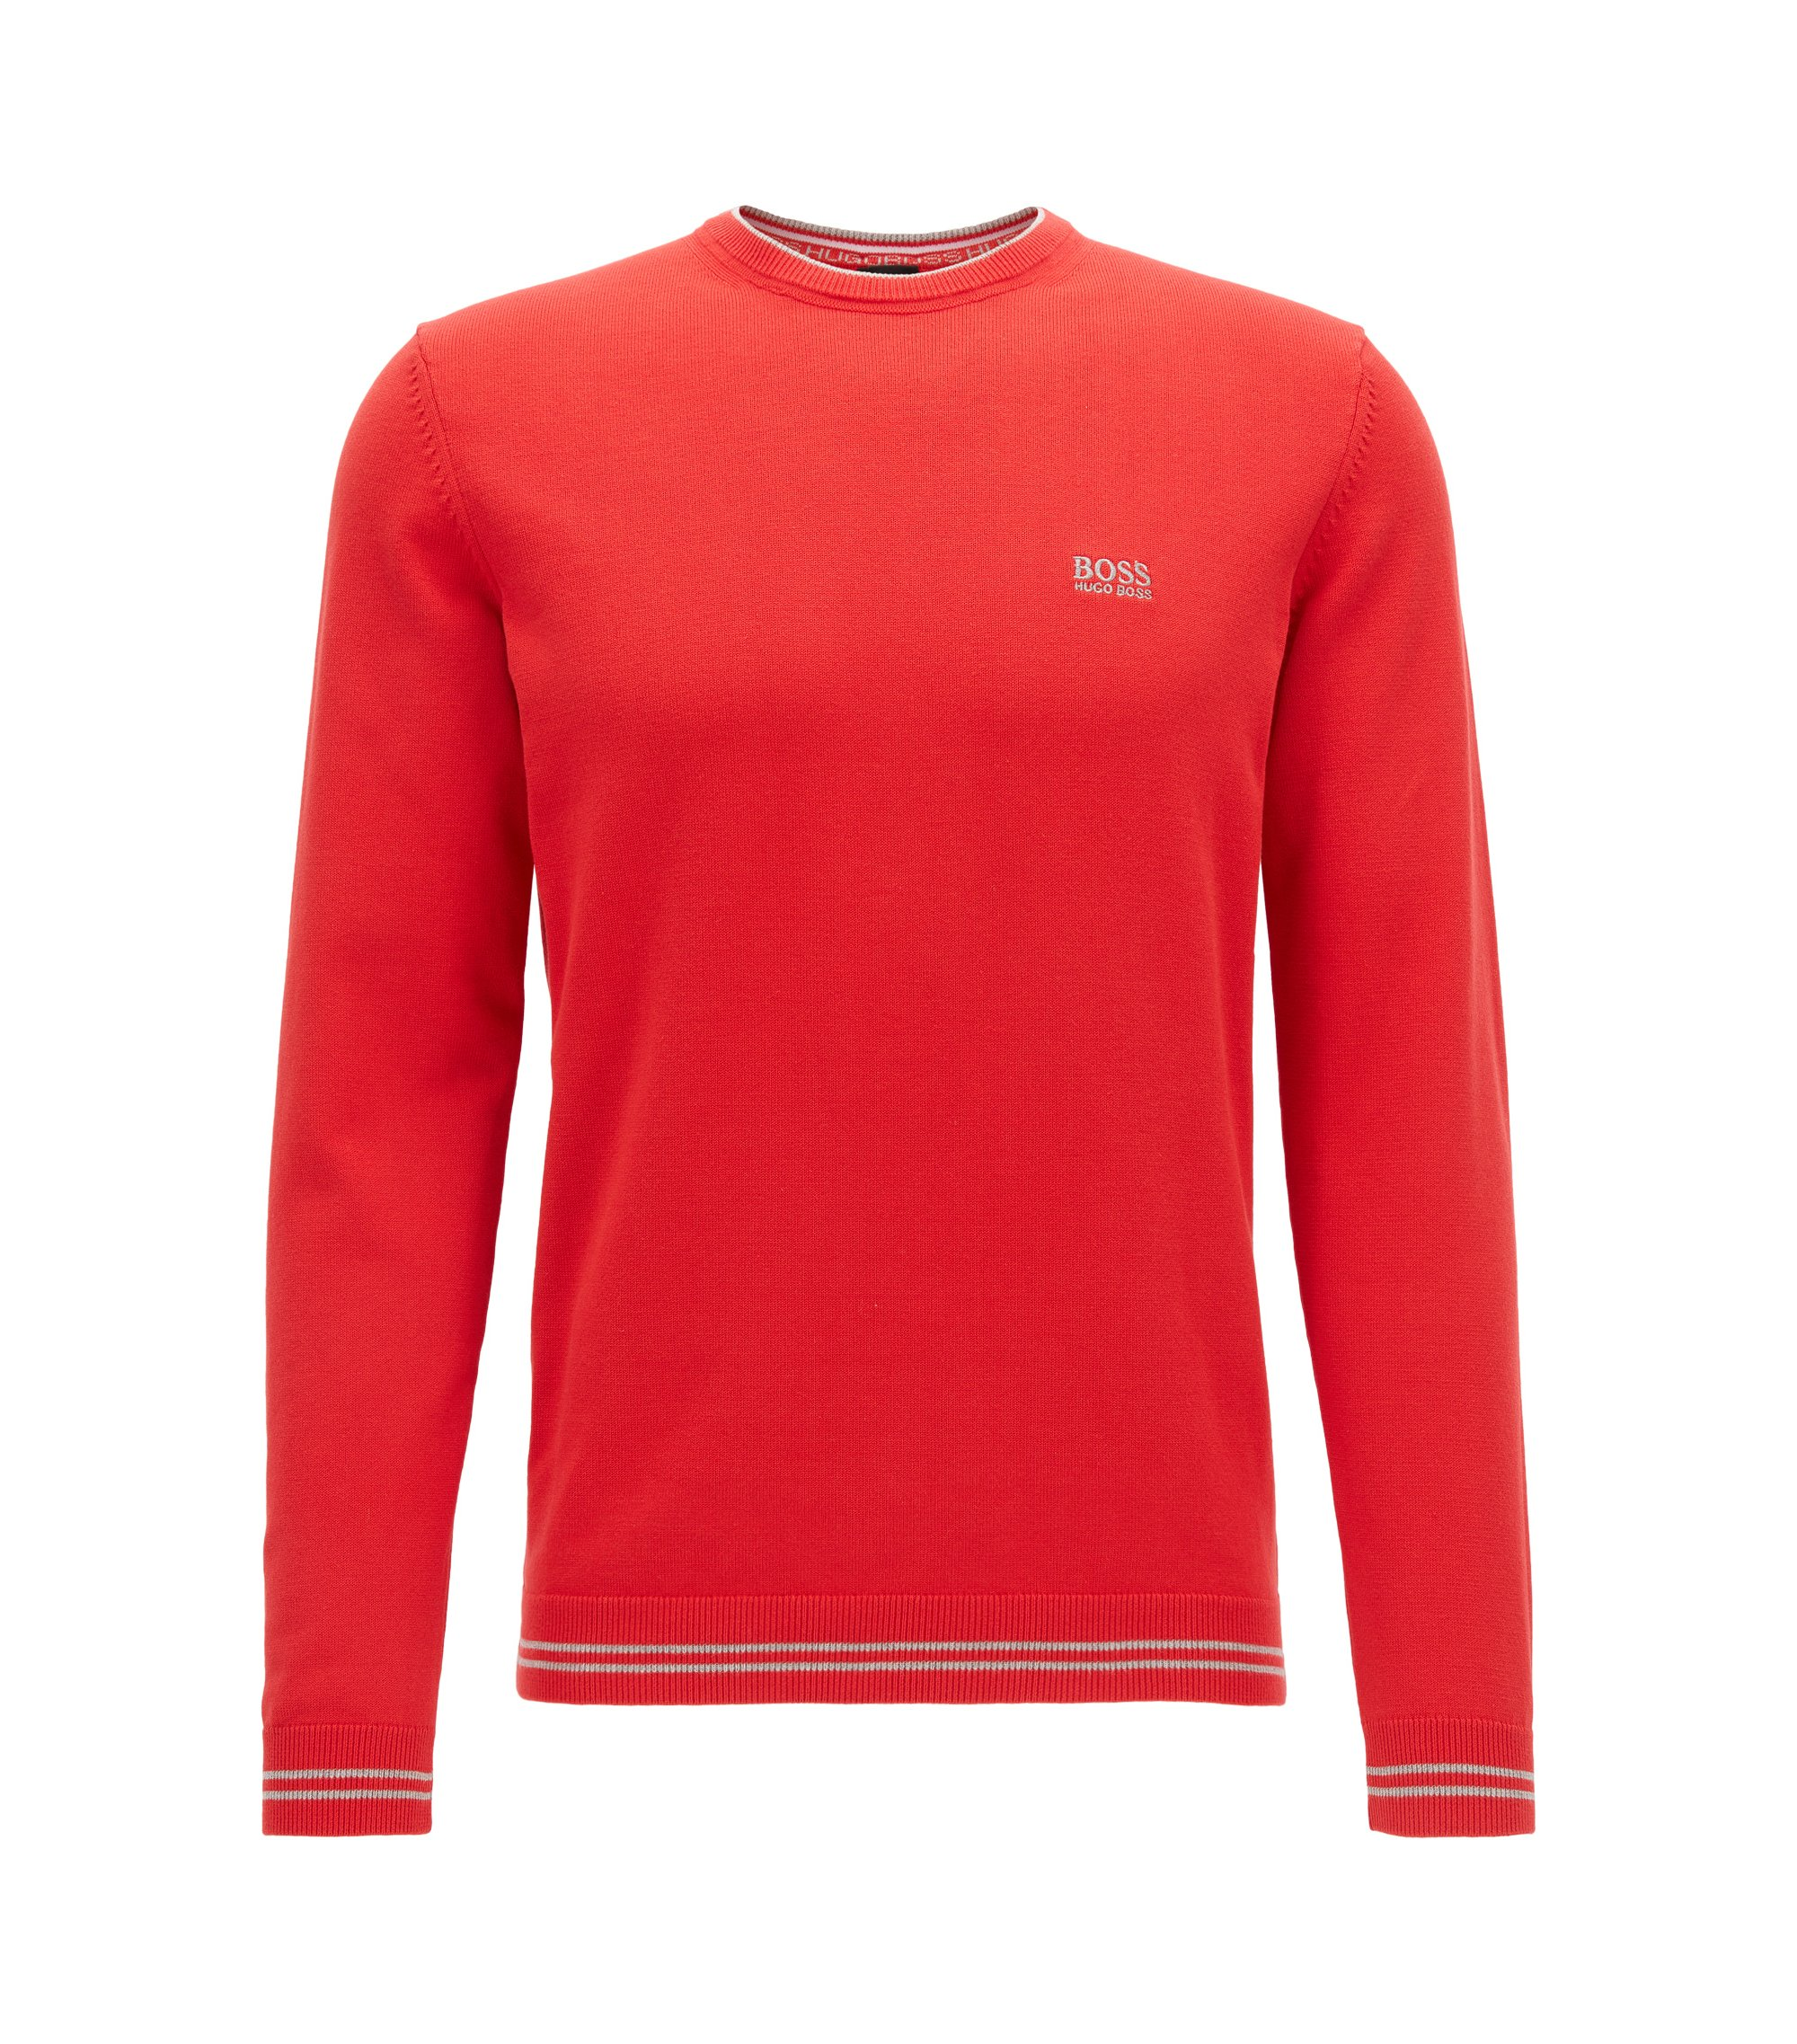 Crew-neck sweater in a cotton blend, Red